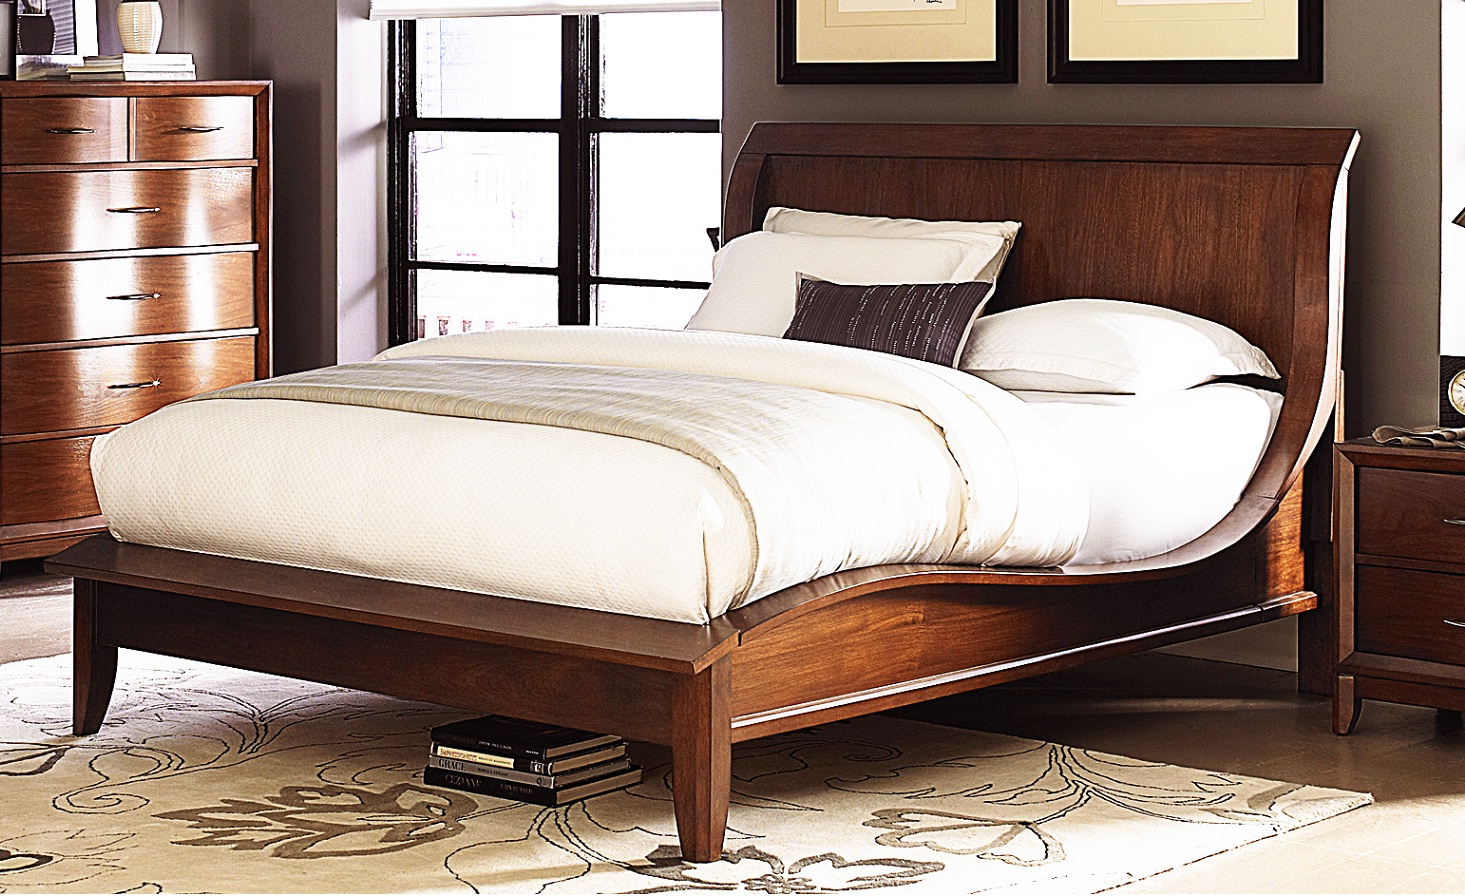 King size wood bed frame image of queen size sleigh bed for Spring hill designs bedroom furniture